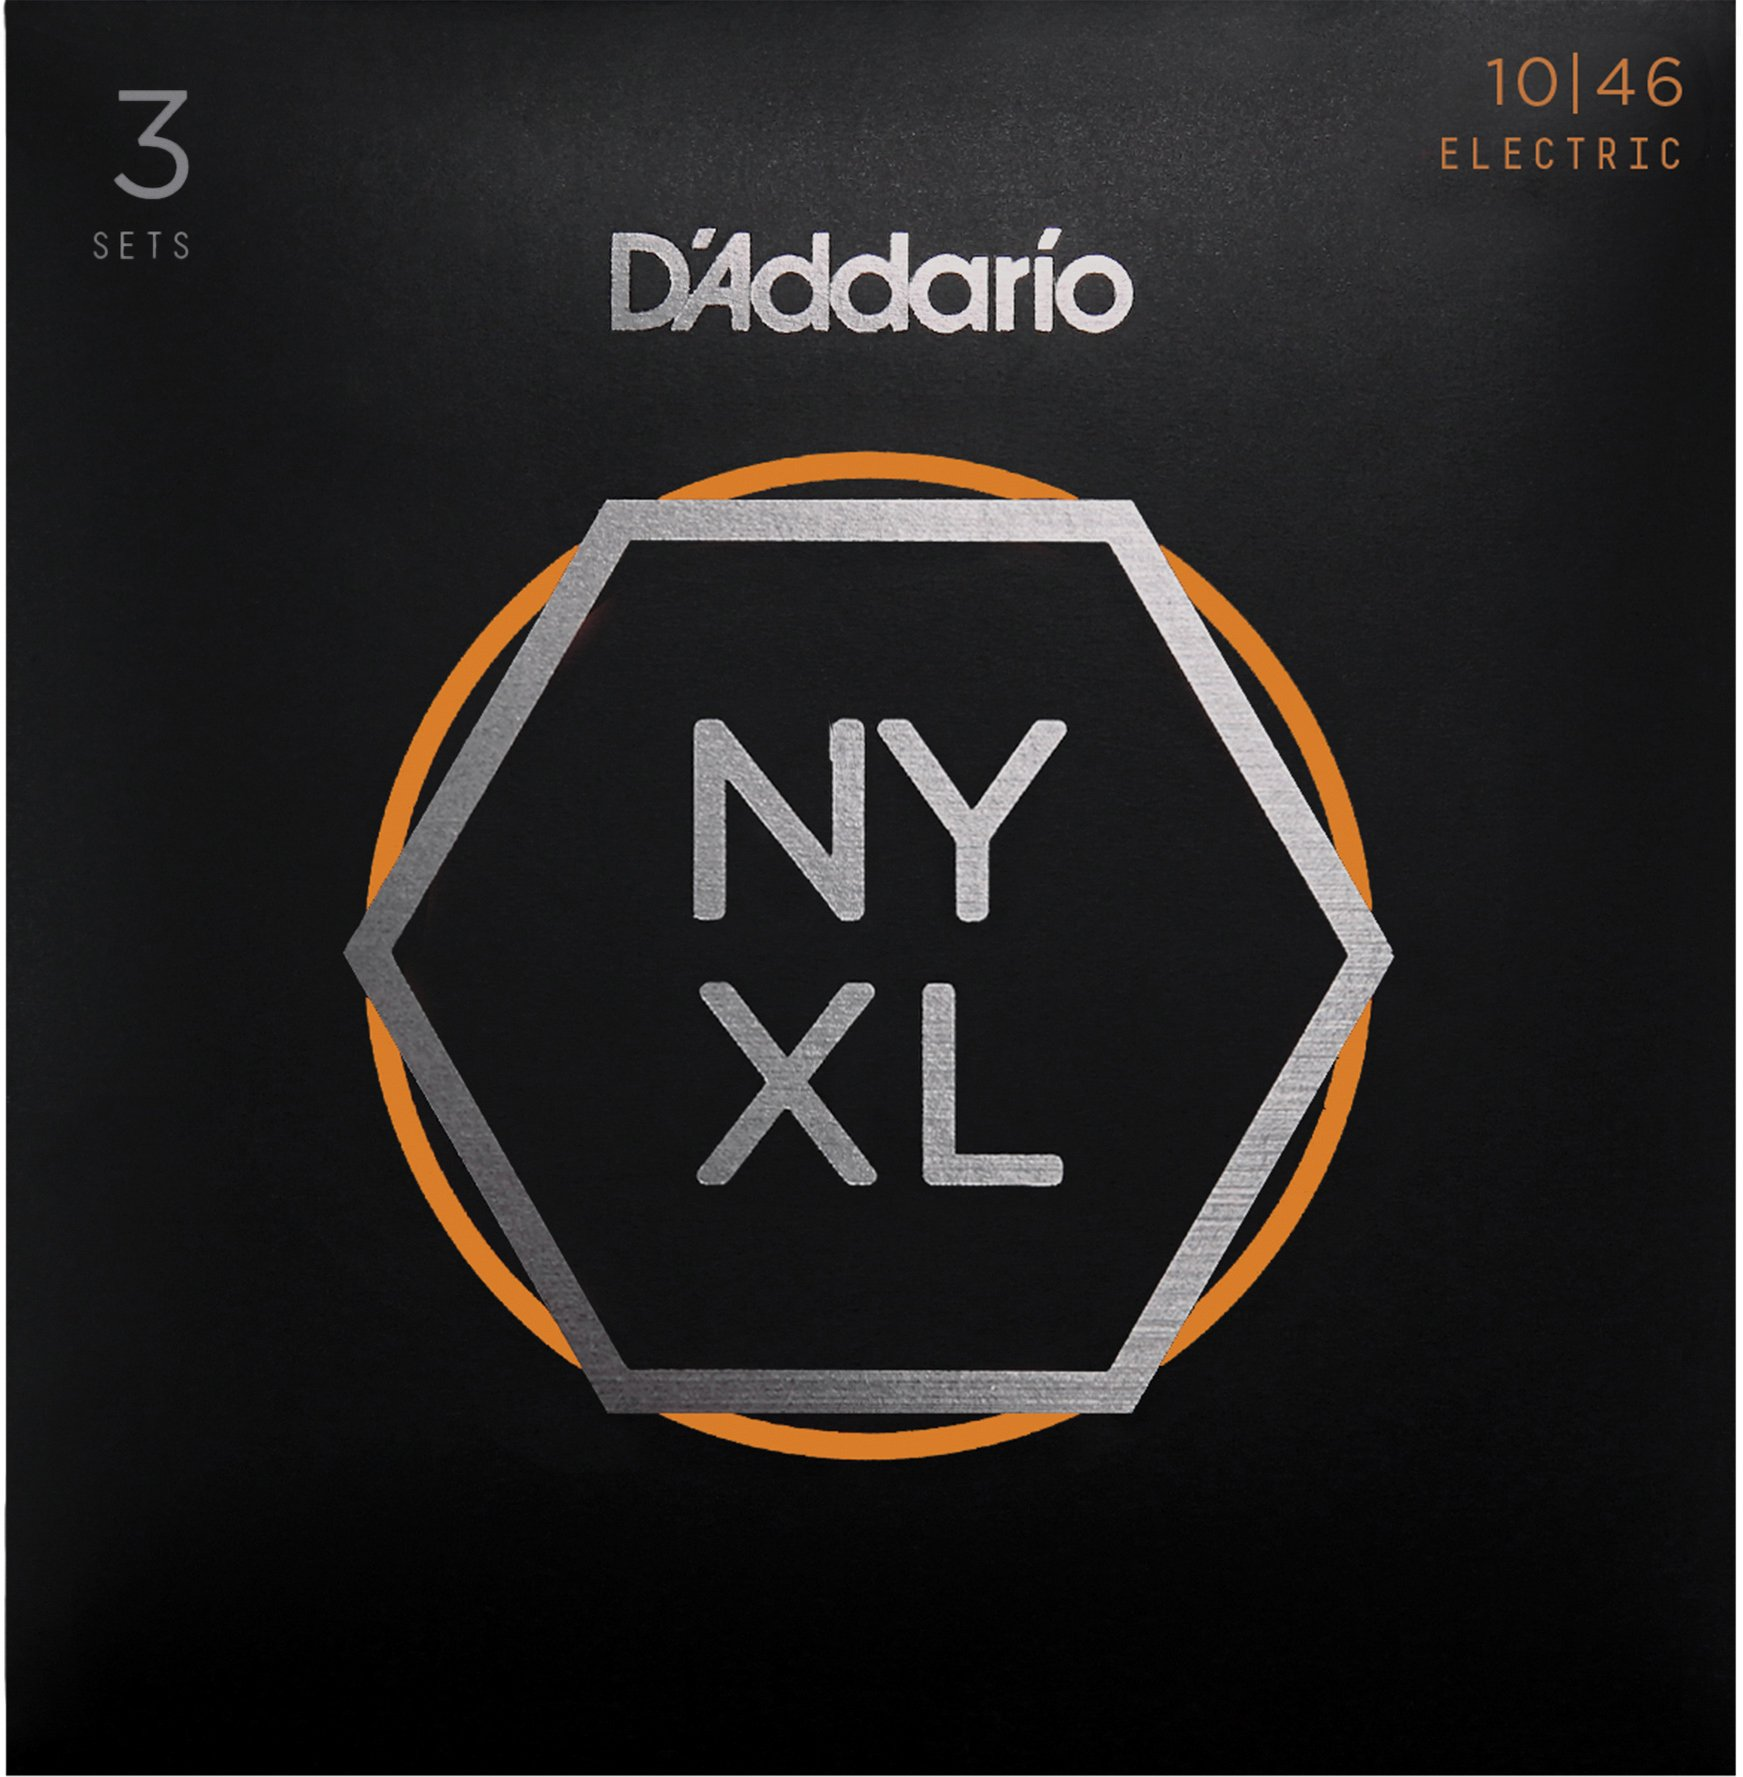 D'Addario NYXL1046-3P Nickel Plated Electric Guitar Strings, Regular Light,10-46 (3 Sets) – High Carbon Steel Alloy for Unprecedented Strength – Ideal Combination of Playability and Electric Tone by D'Addario (Image #1)